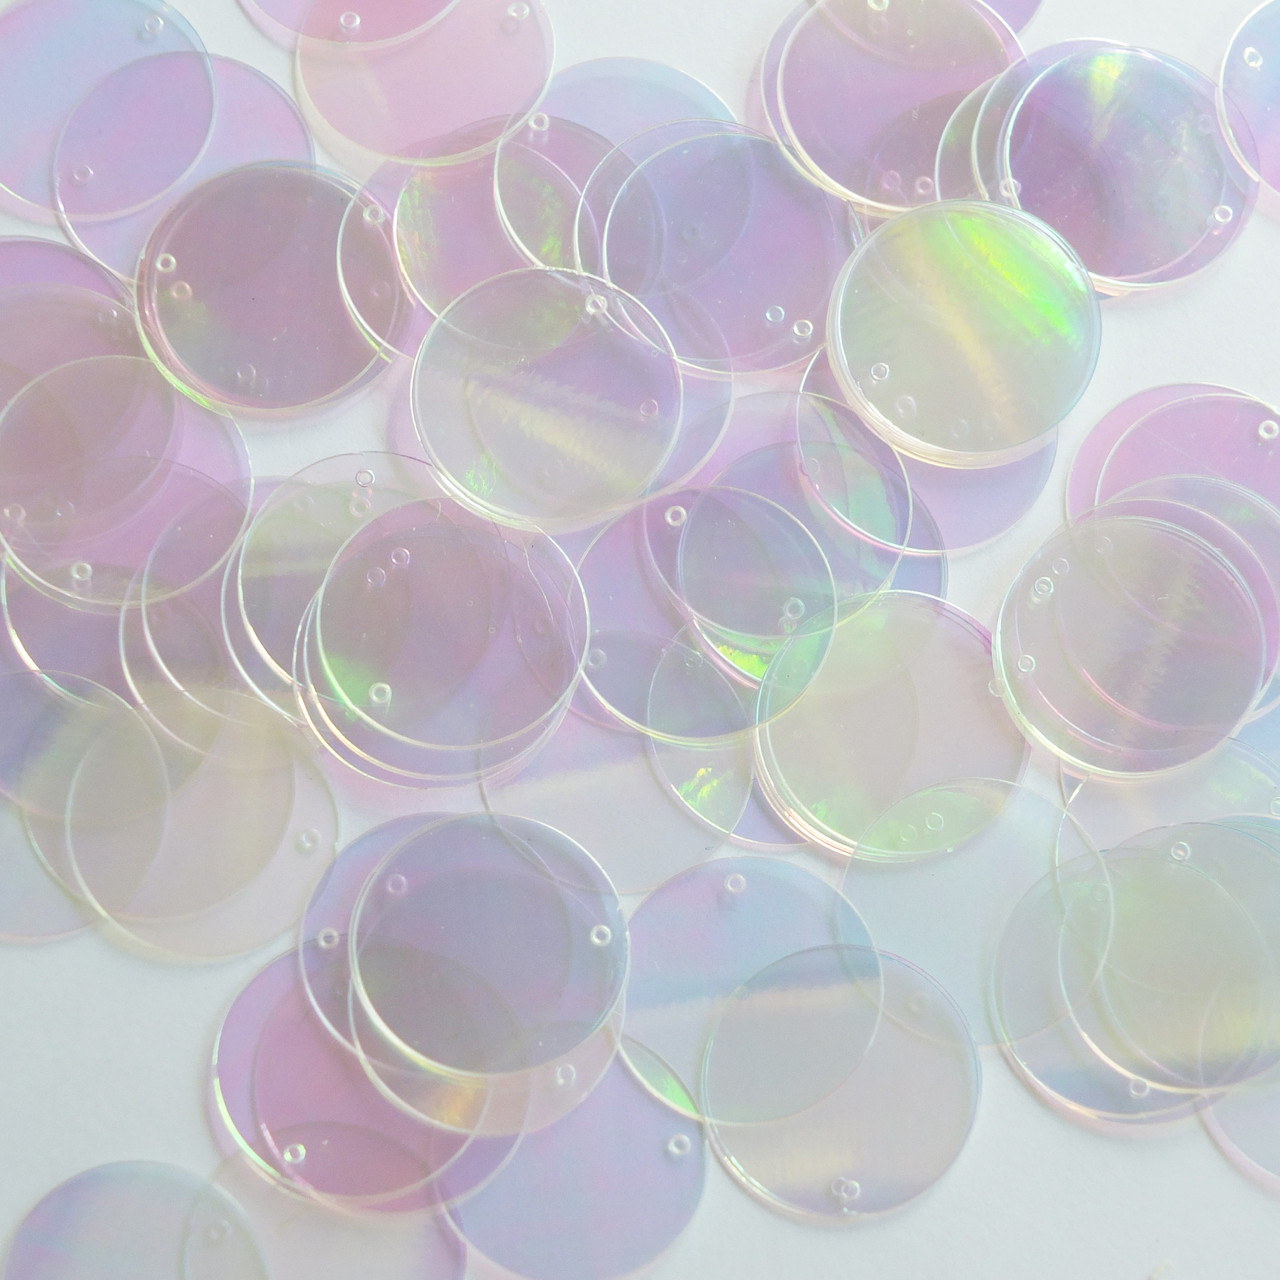 Made in USA Sequin Paillettes  20mm flat round  Pink Frost Rainbow Iridescent